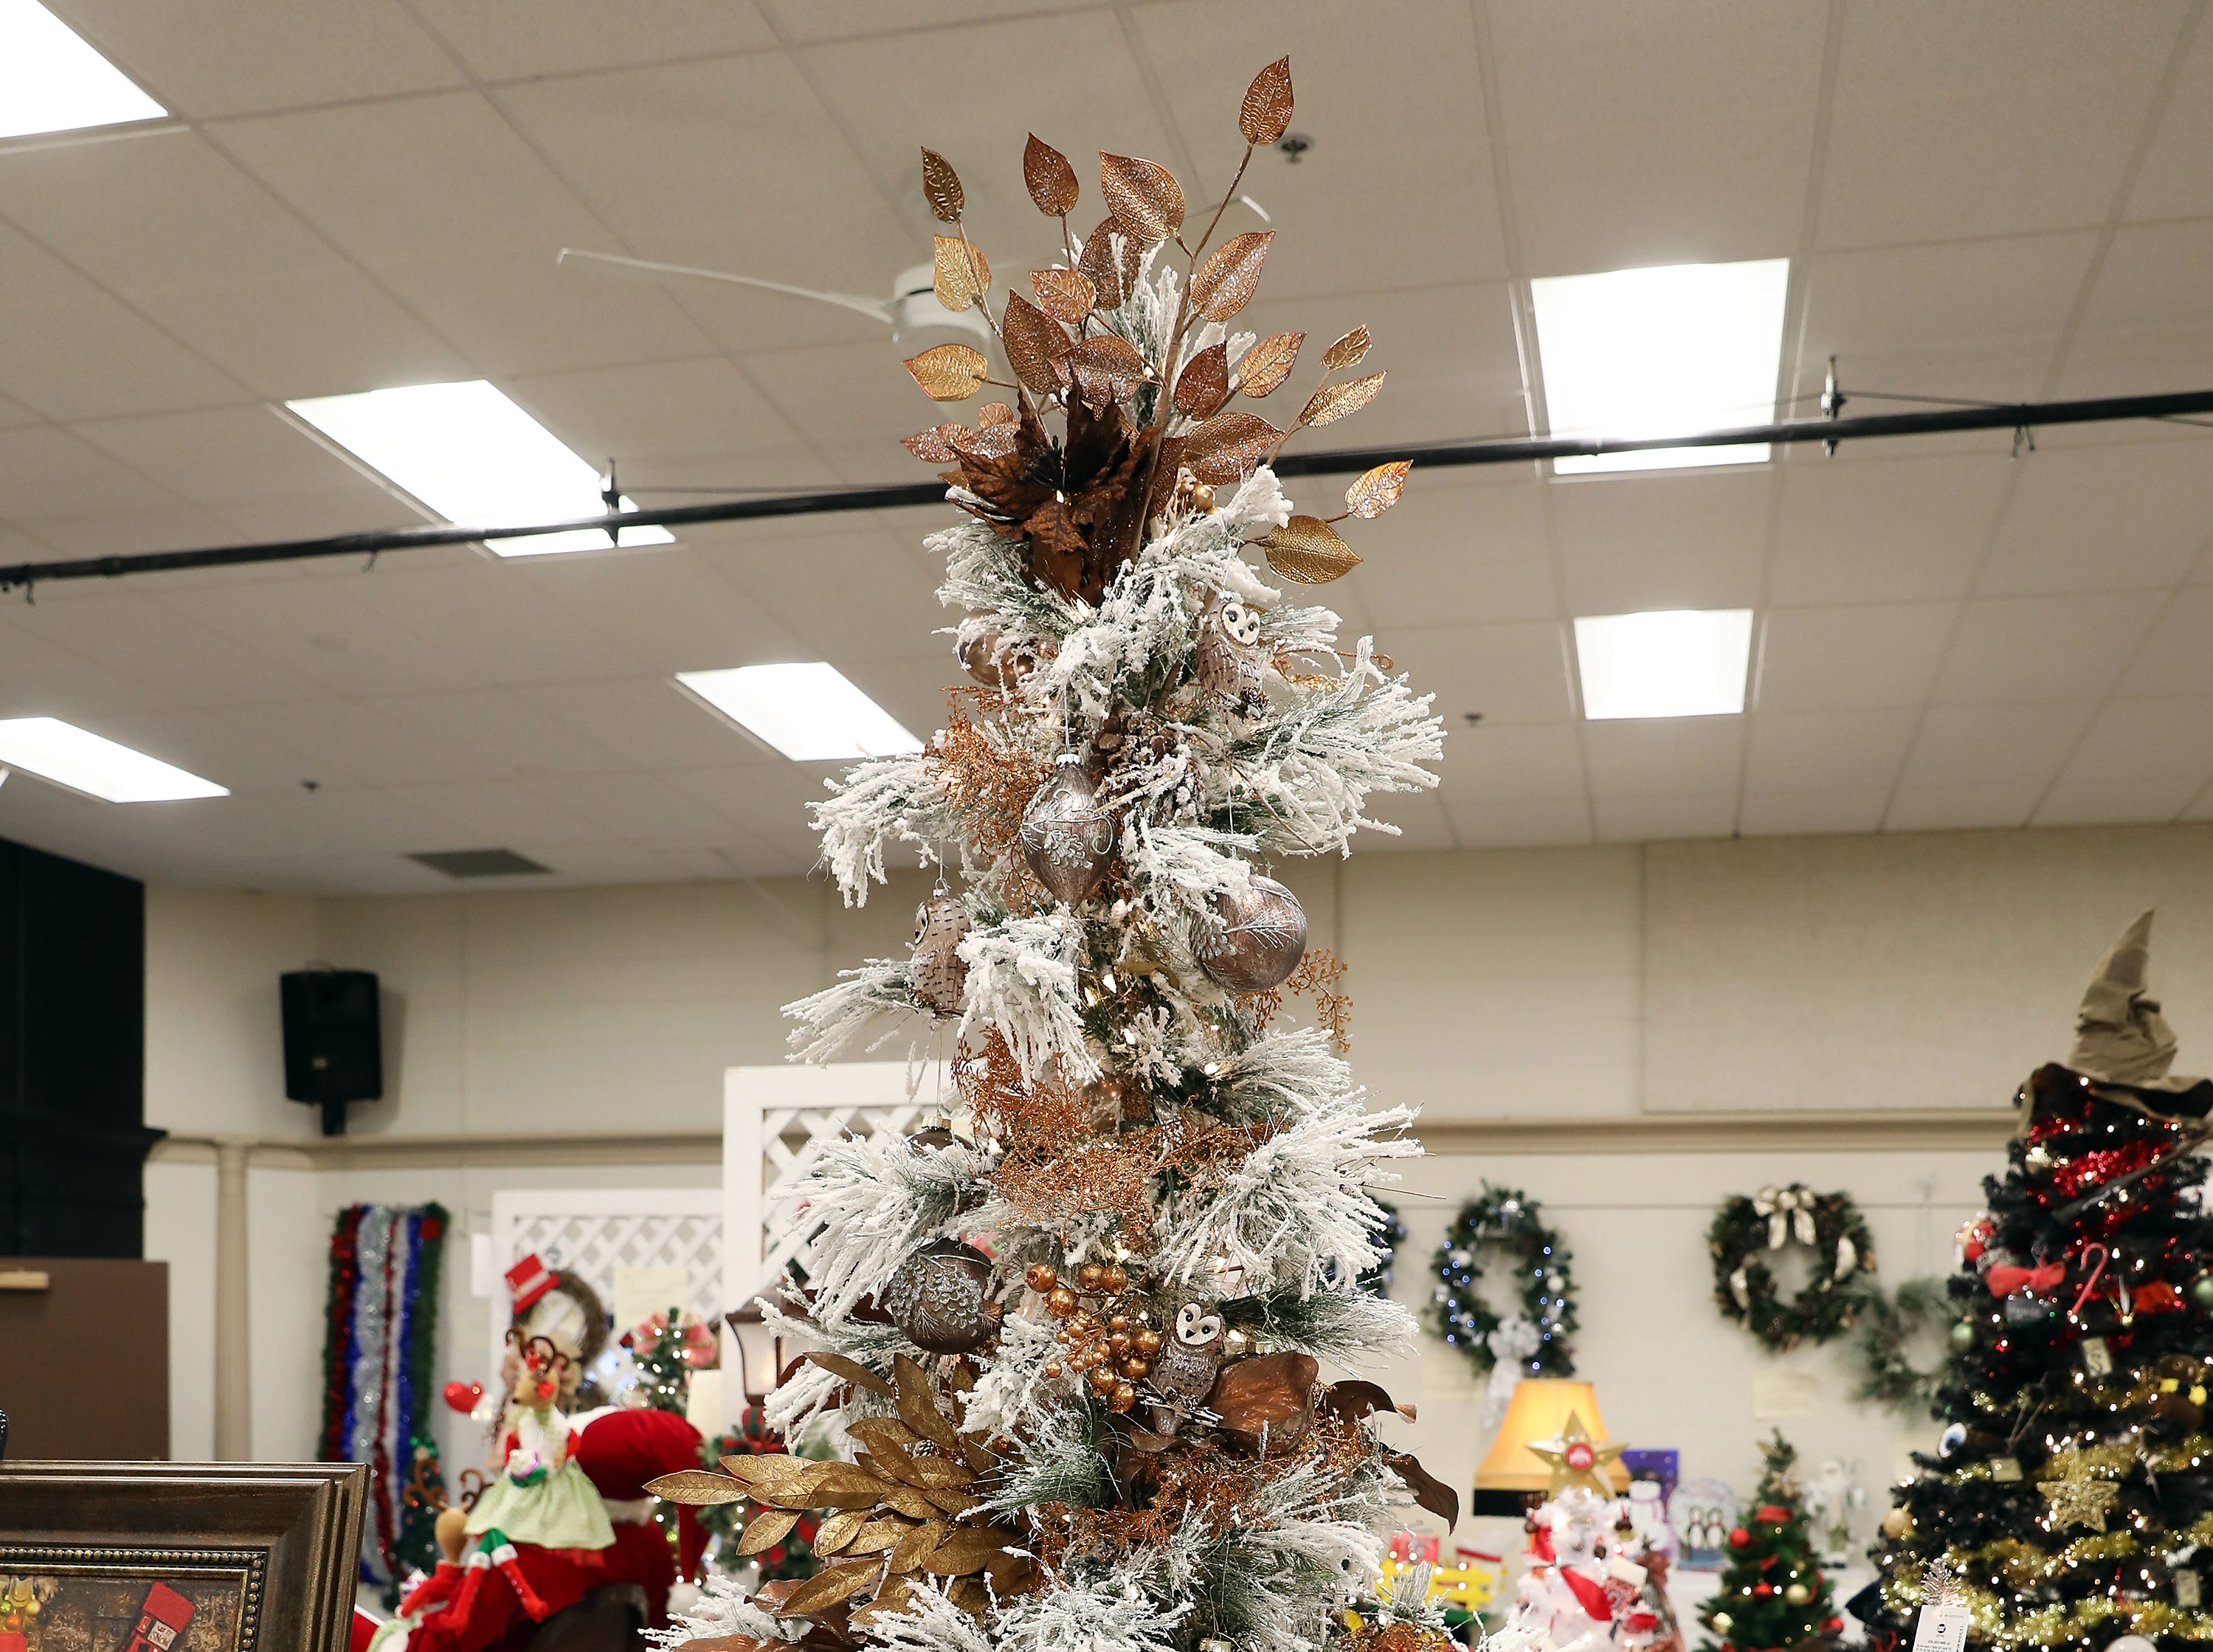 2045:00 PMThorne, Plumbing, Heating and Air ConditioningLarge TreeMerry Christmas!7.5' Flocked Bear Mountain tree elegantly decorated with glass owls, ornaments and shades of copper.Entry is incentive.